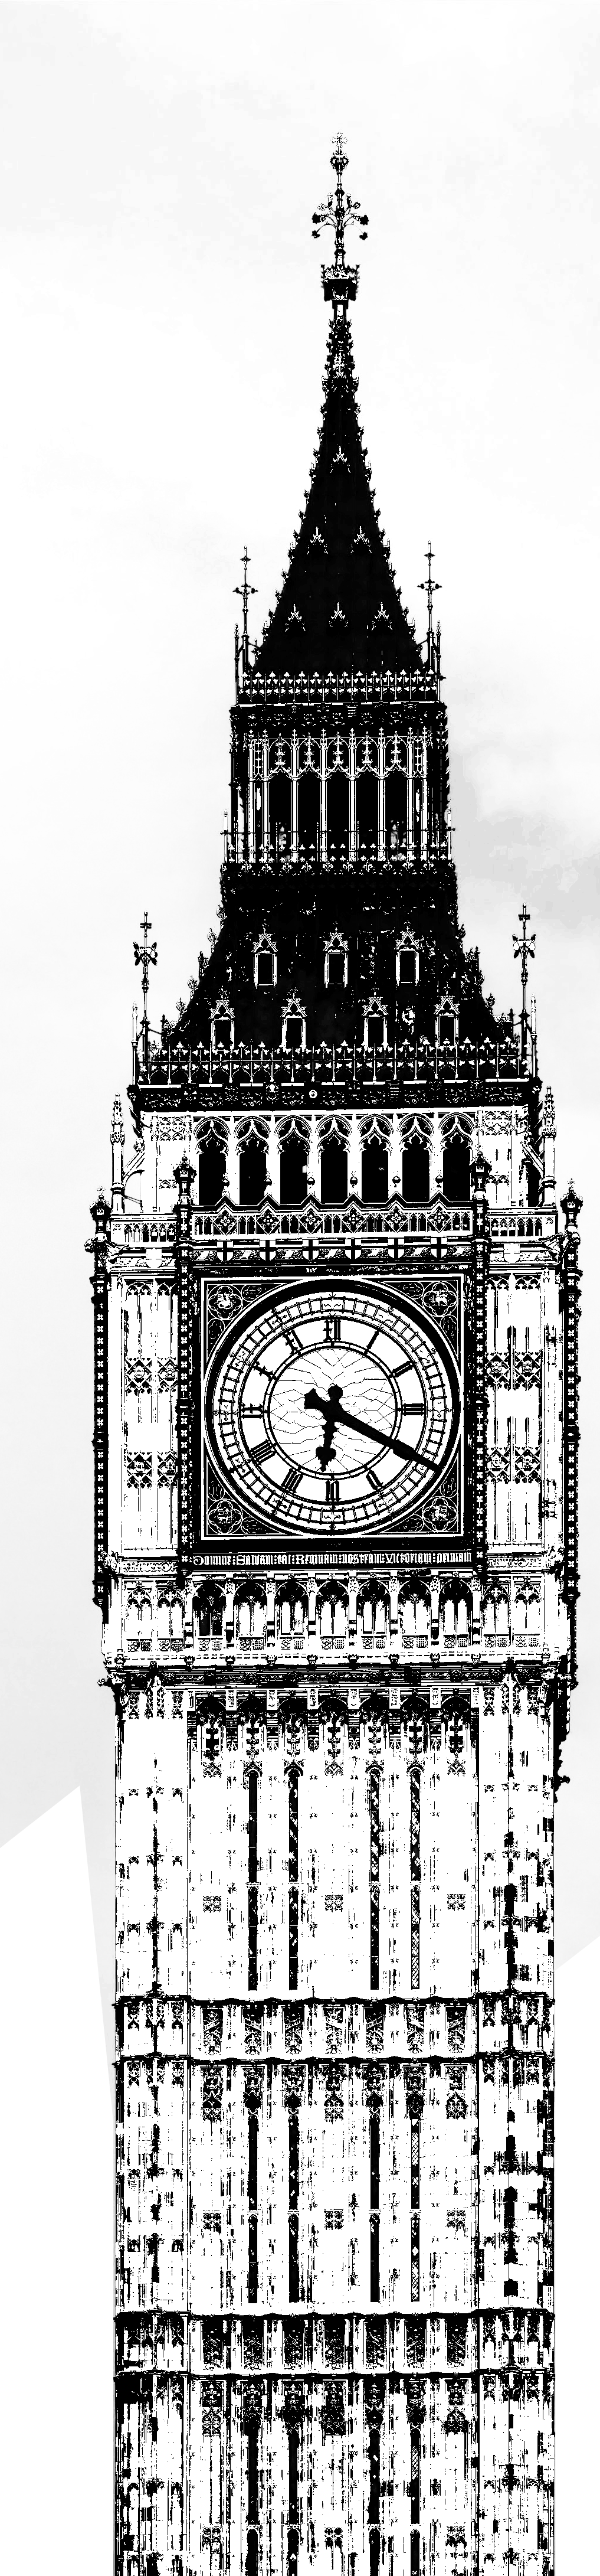 London clock png transparent. Tower clipart medieval tower